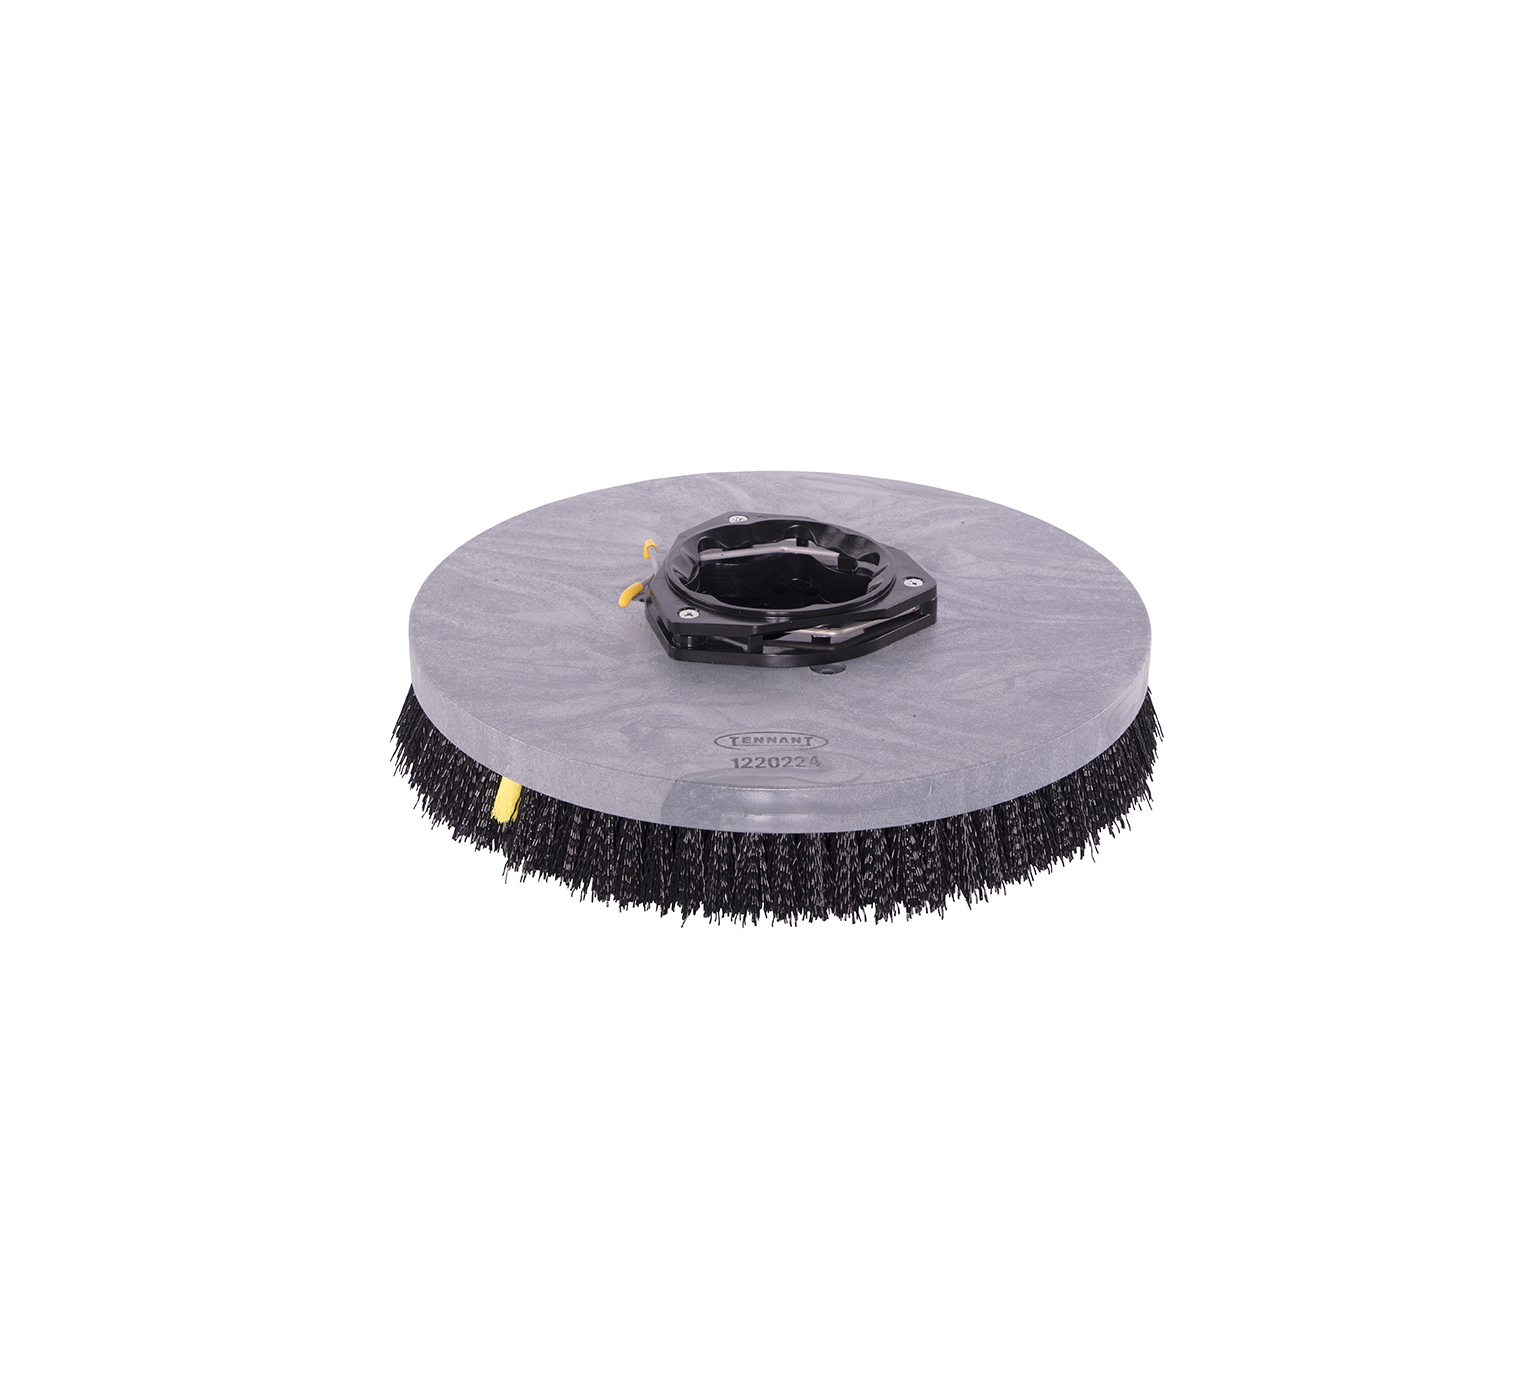 1220224 Polypropylene Disk Scrub Brush Assembly – 16 in / 406 mm alt 1